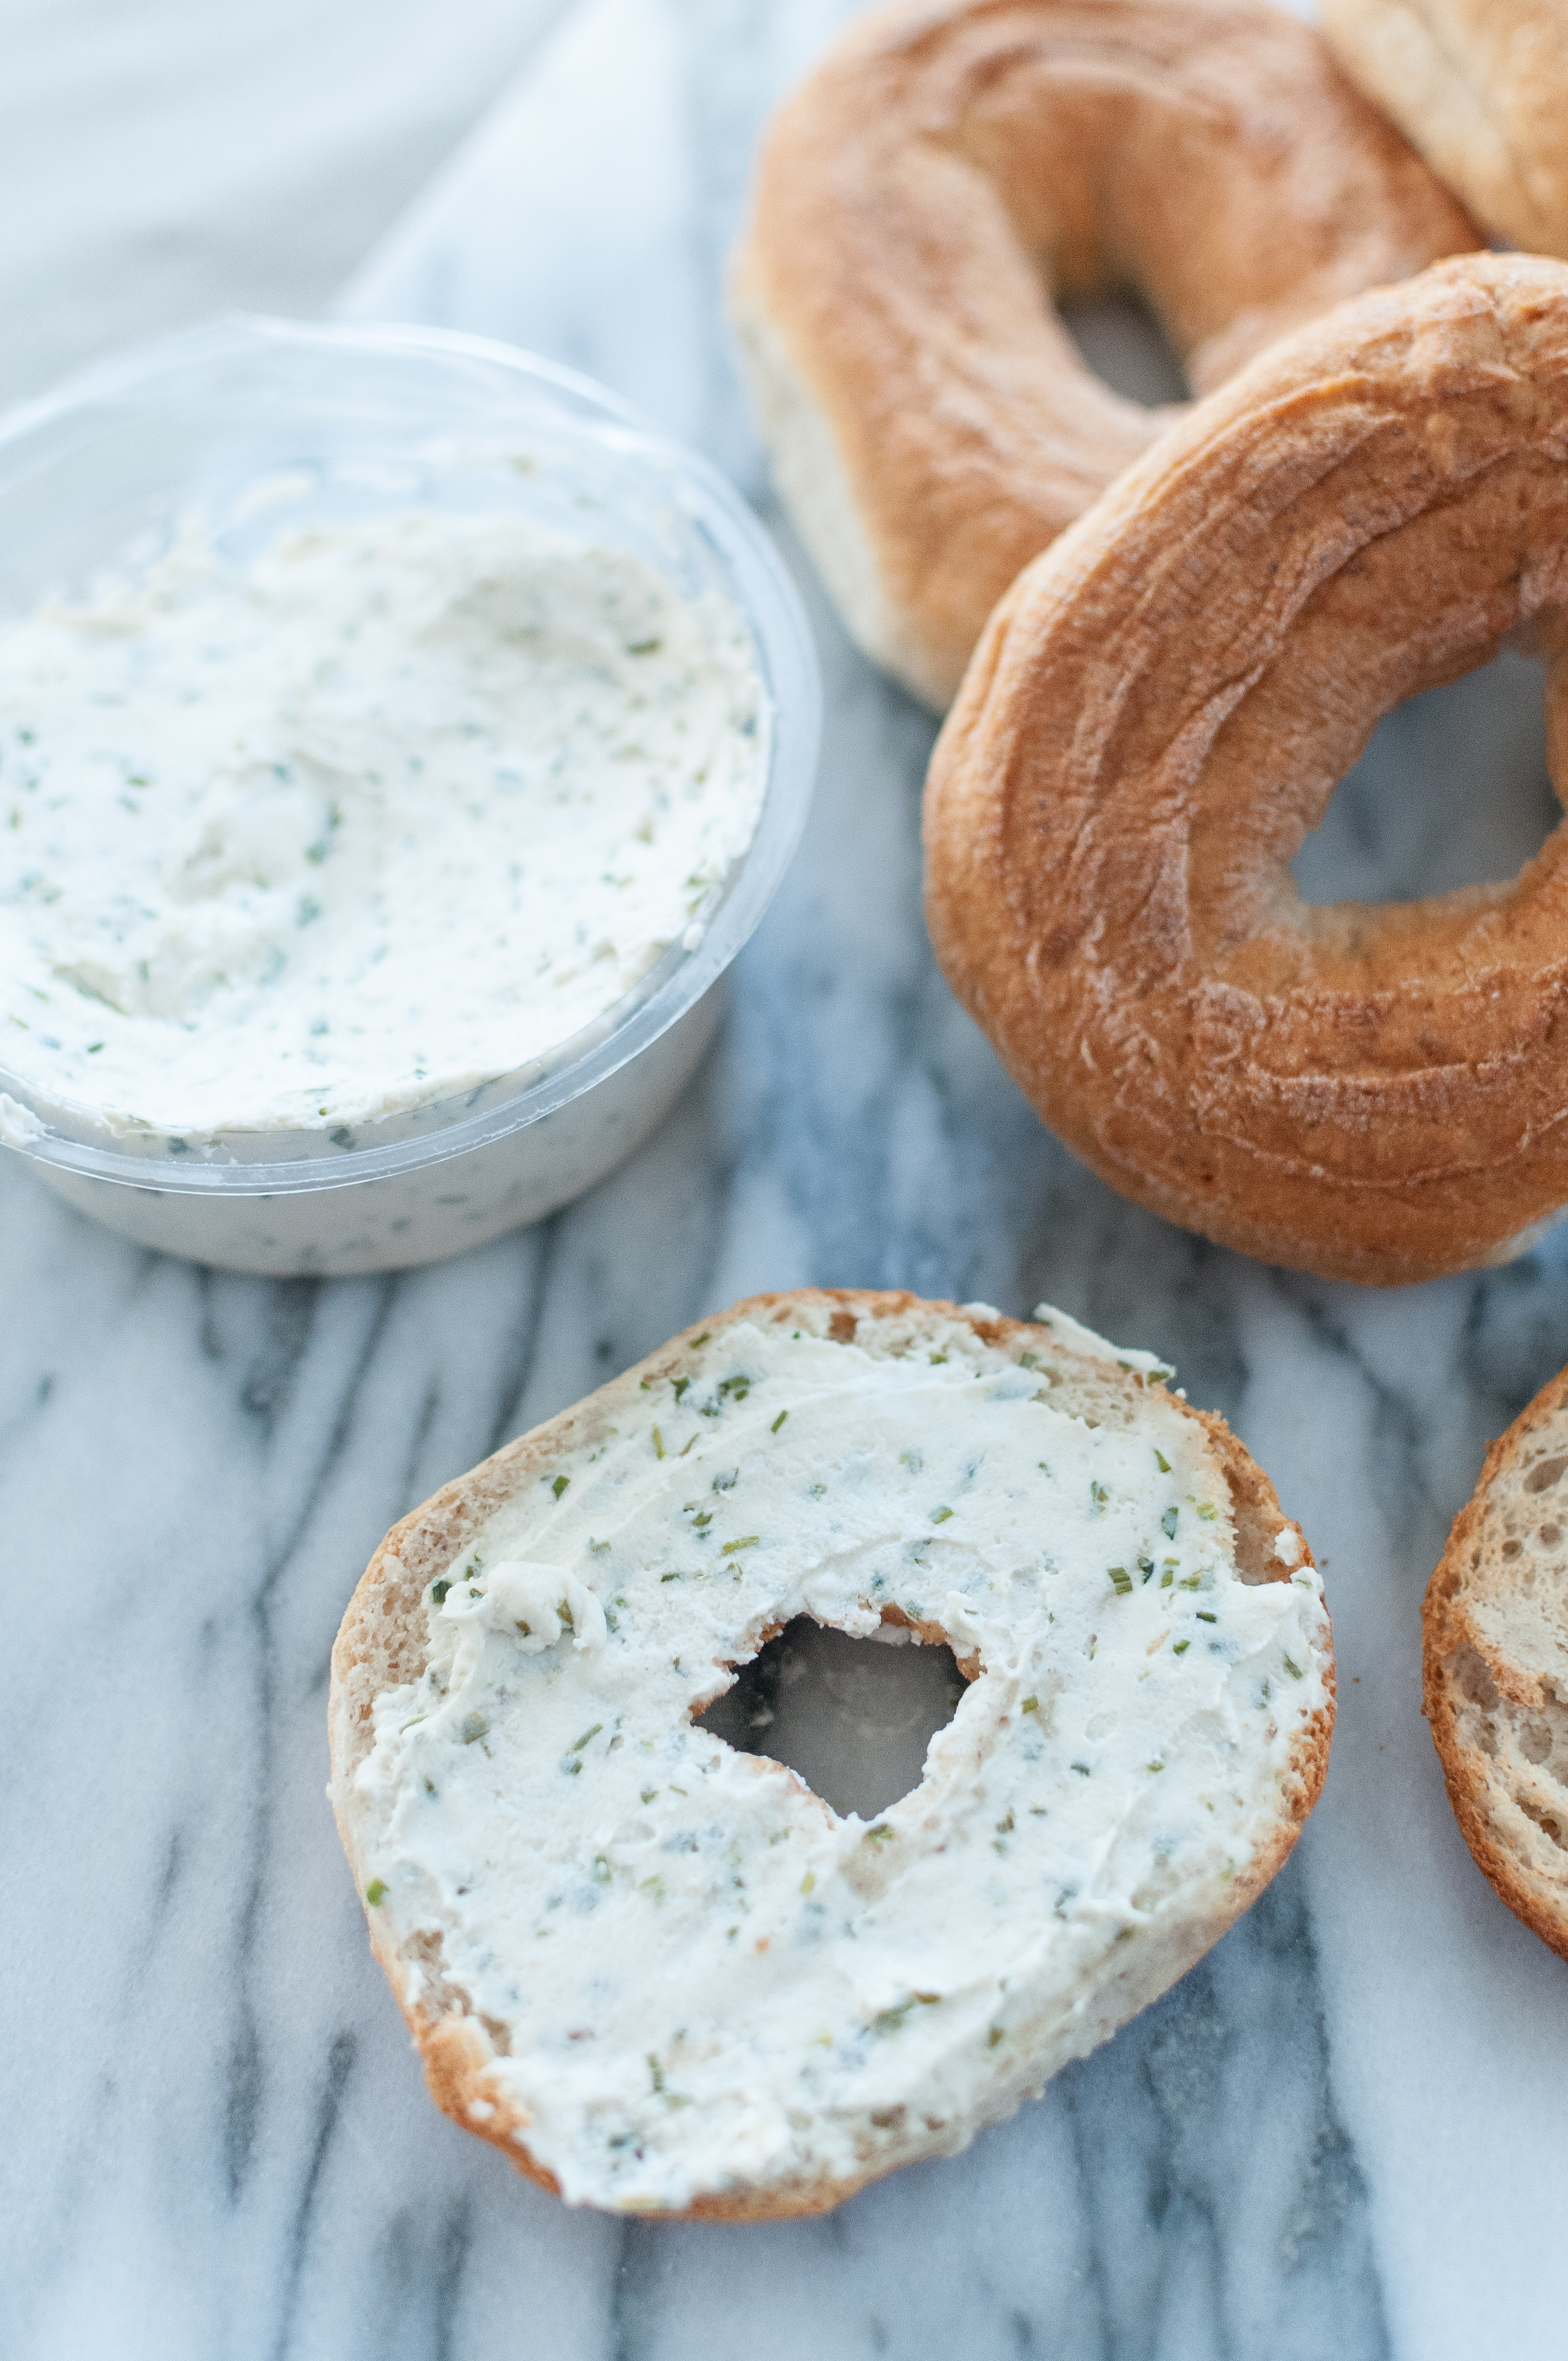 kite hill cream cheese on udis bagels